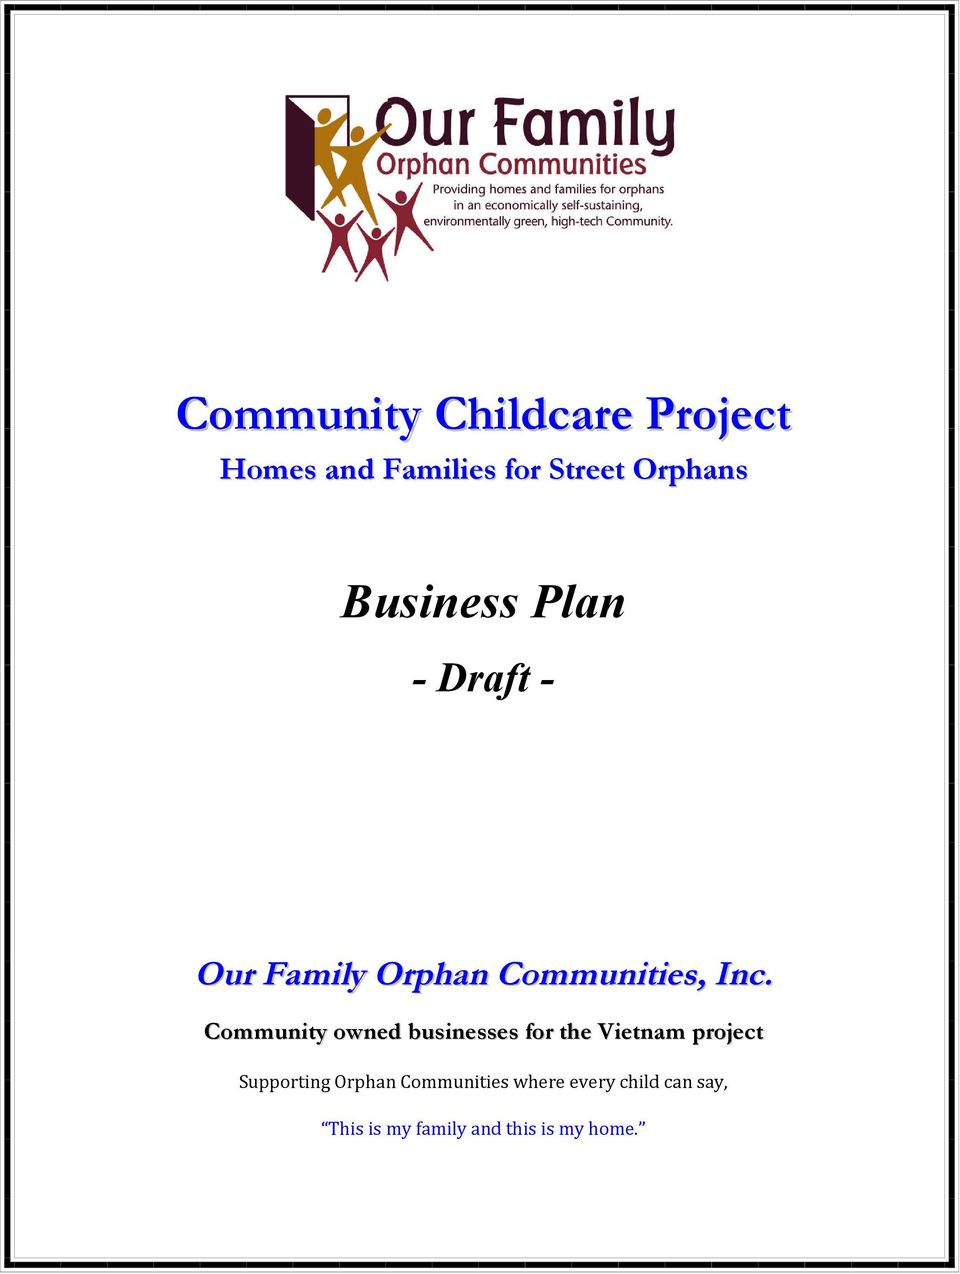 business plan draft supporting orphan communities where every